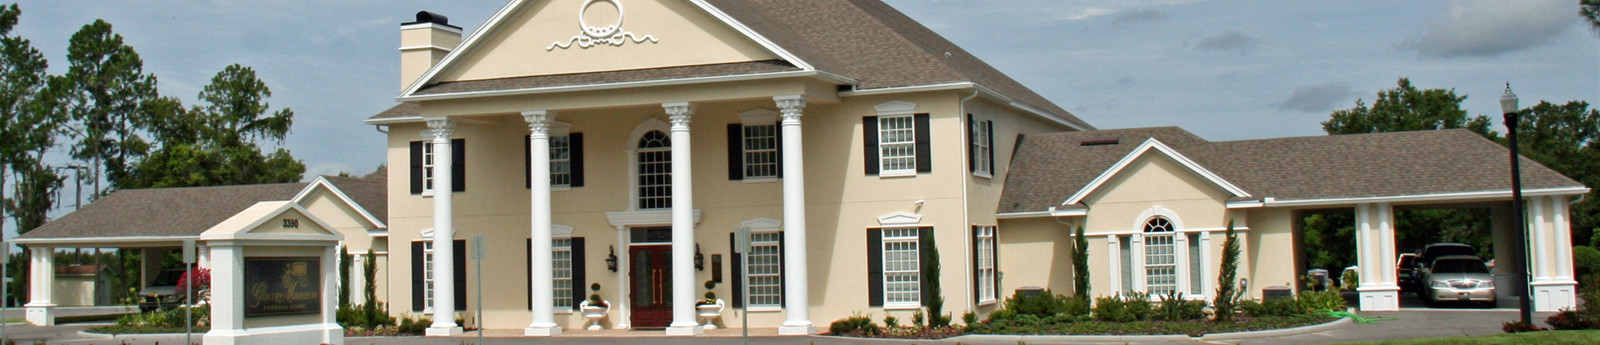 About Us | Gentry-Morrison Funeral Homes